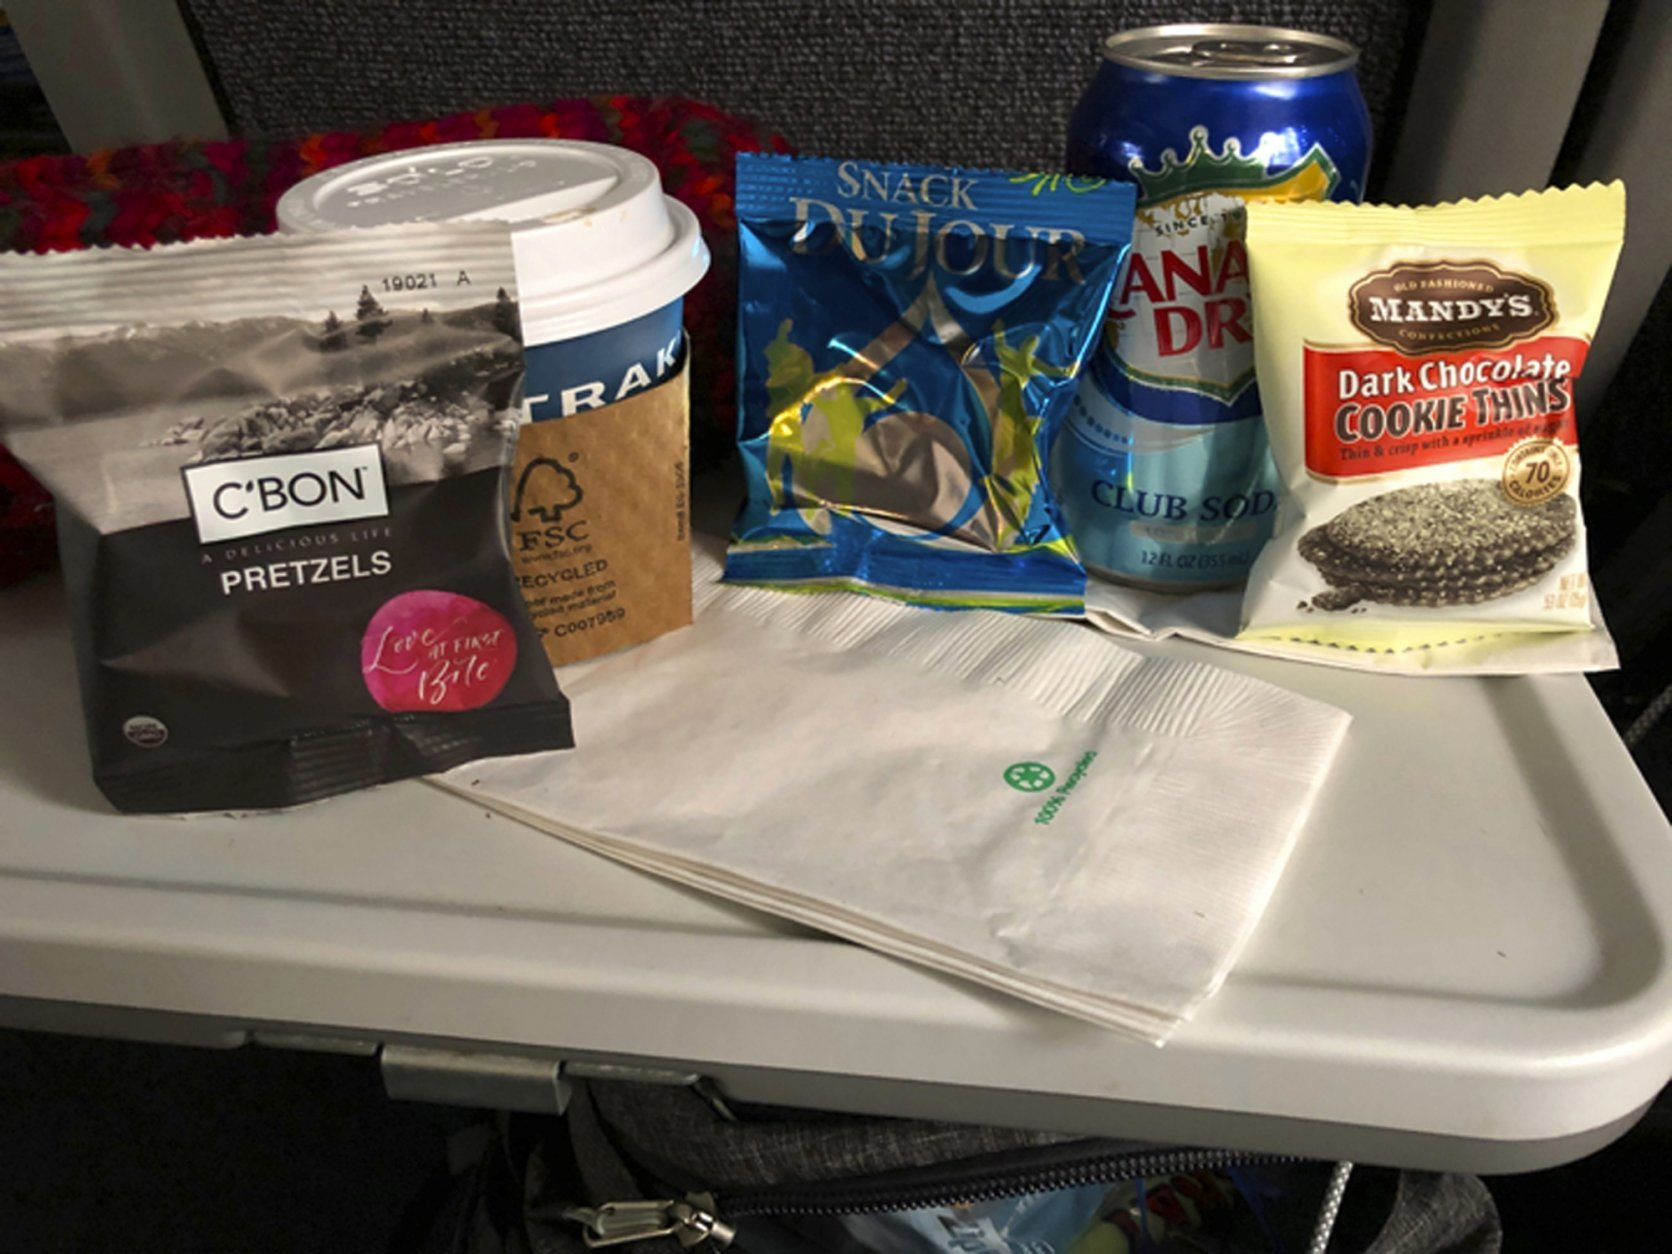 This photo provided by Emilie Wyrick shows some of her subsistence rations as she waited aboard a stranded Amtrak train after it hit downed trees during a blizzard in the Oregon mountains and stopped for a day and a half, seen early Tuesday, Feb. 26, 2019. During the 36 hours that the train was stuck, younger passengers helped older ones reach their families to let them know they were all right. The trouble began Sunday evening, when the double-decker Coast Starlight train struck a tree that had fallen onto the tracks, Amtrak said. (Emilie Wyrick via AP)